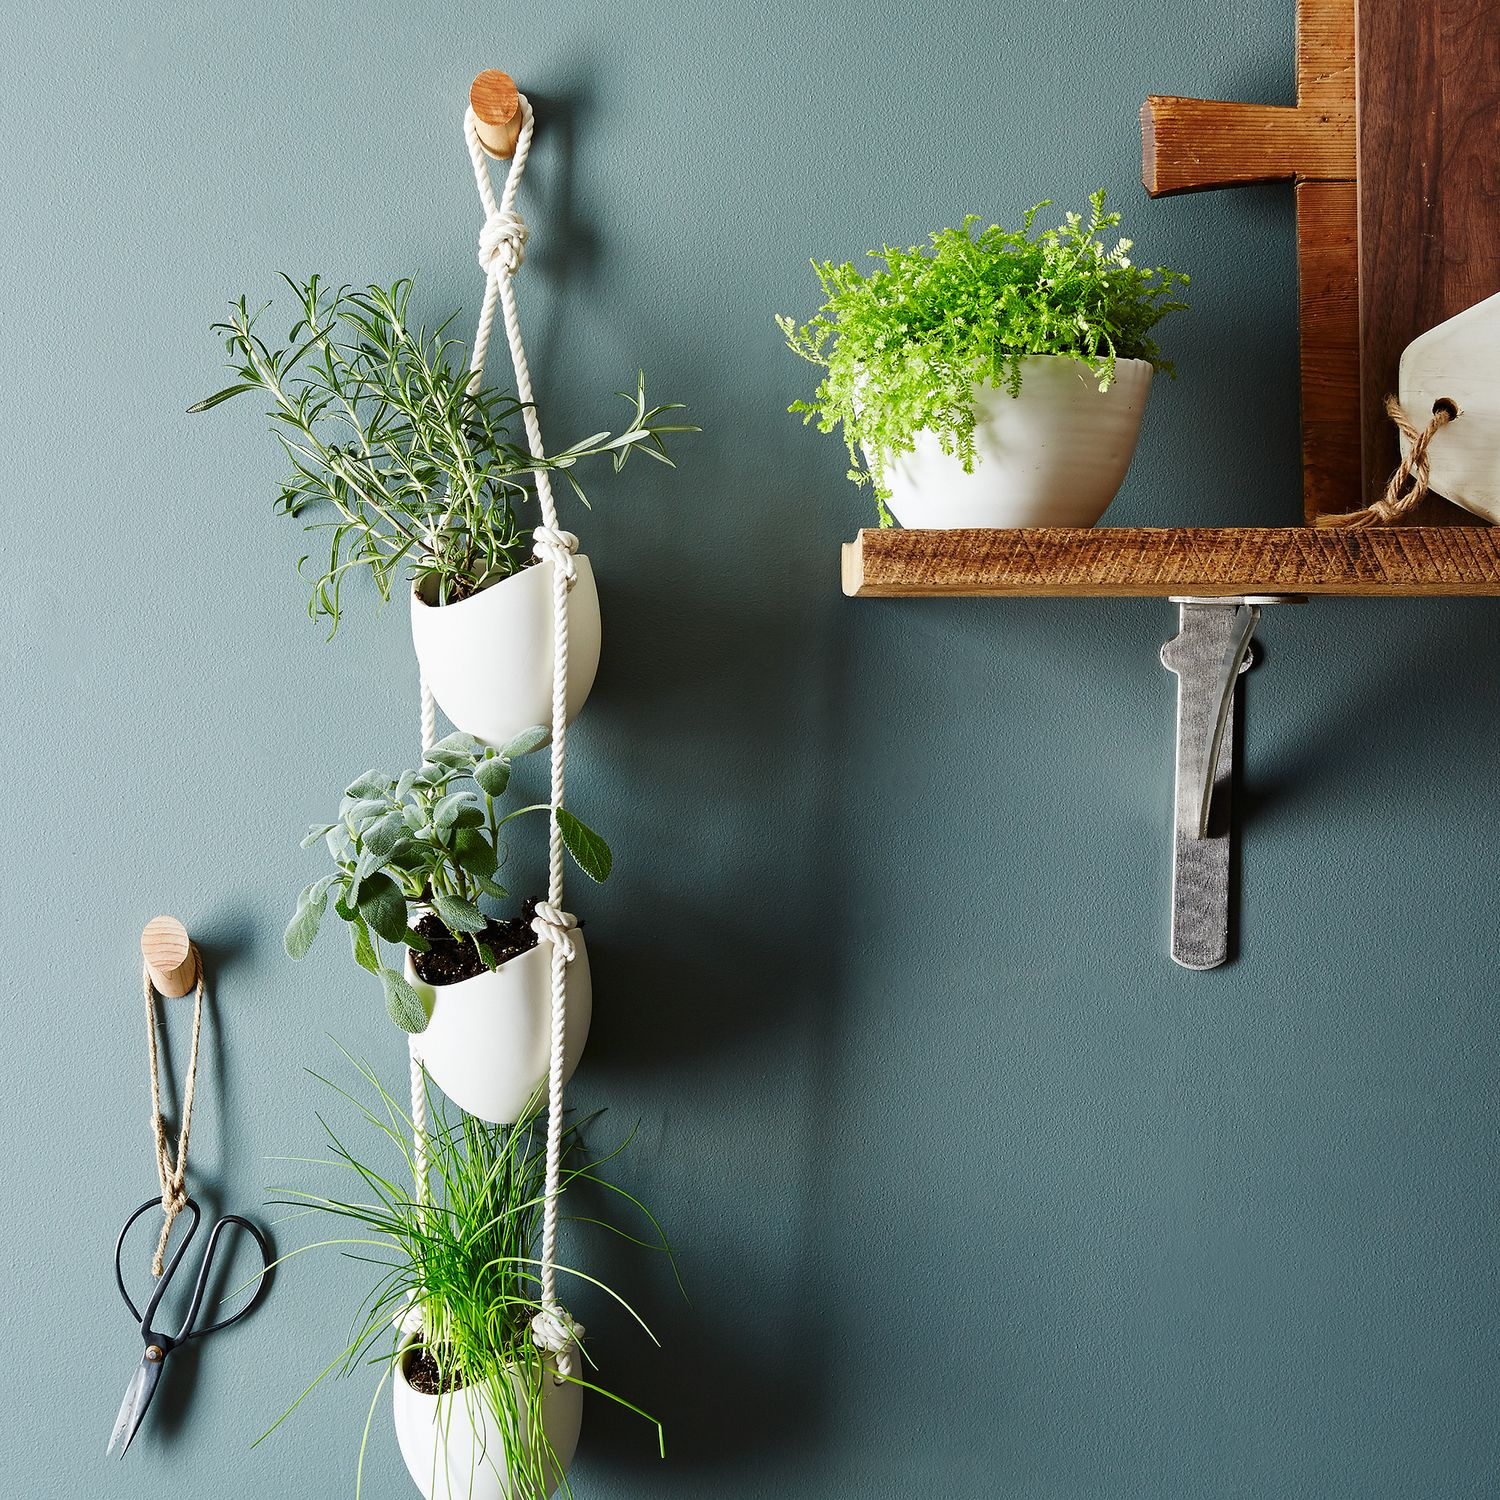 3 Tier Ceramic Hanging Planter On Food52